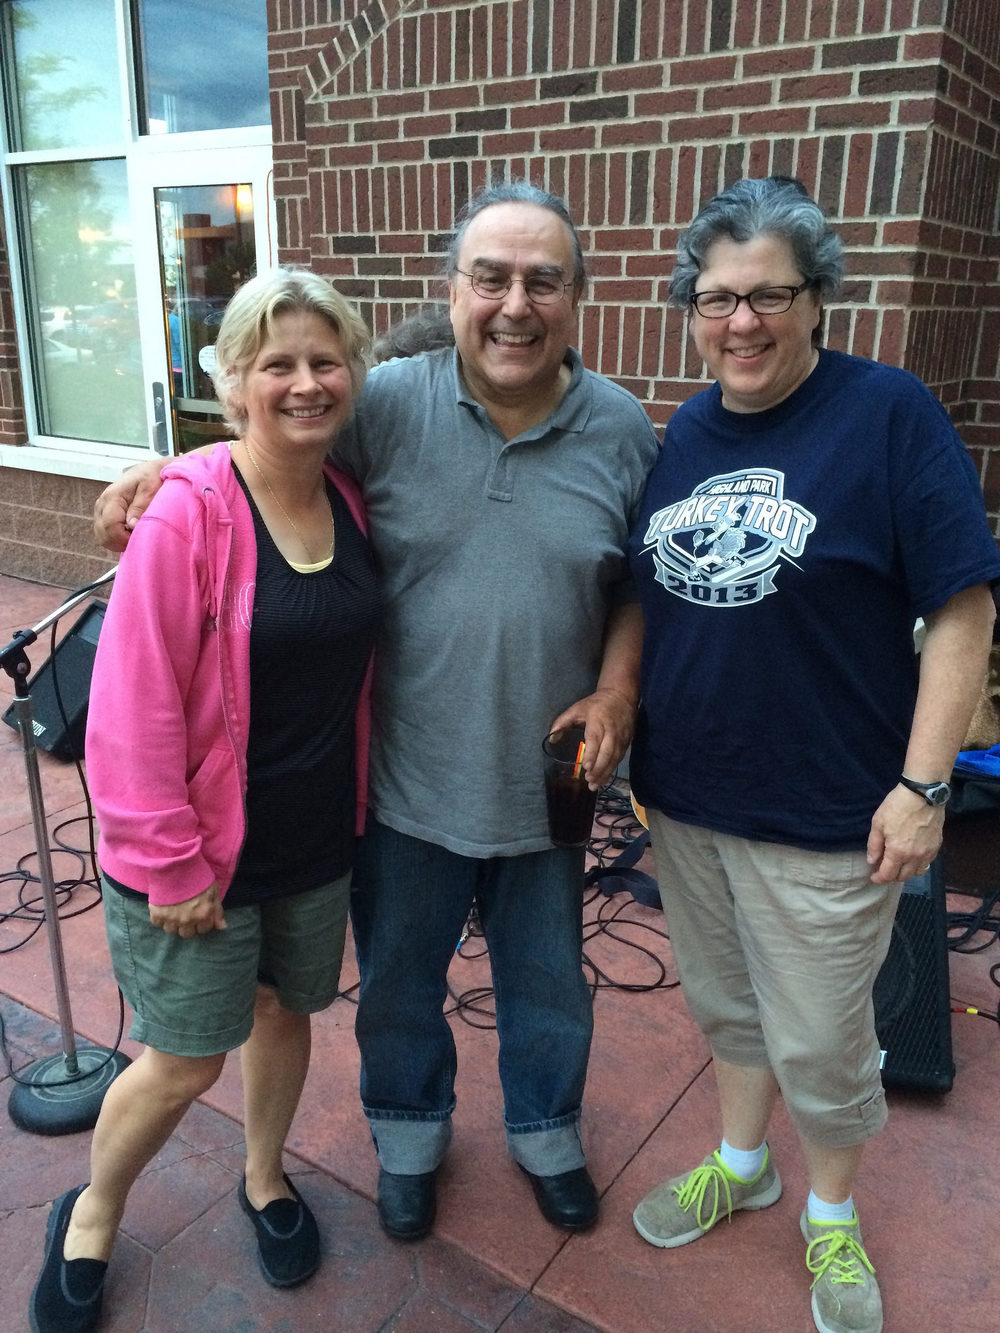 Cheryl Portesan, Billy Hallquist and Mary Portesan Thiel / Tuesday Night Acoustics - Holiday Inn Hotel & Suites / Maple Grove - Arbor Lakes, Minnesota / June 17th, 2014 / Photo by Jim Portesan